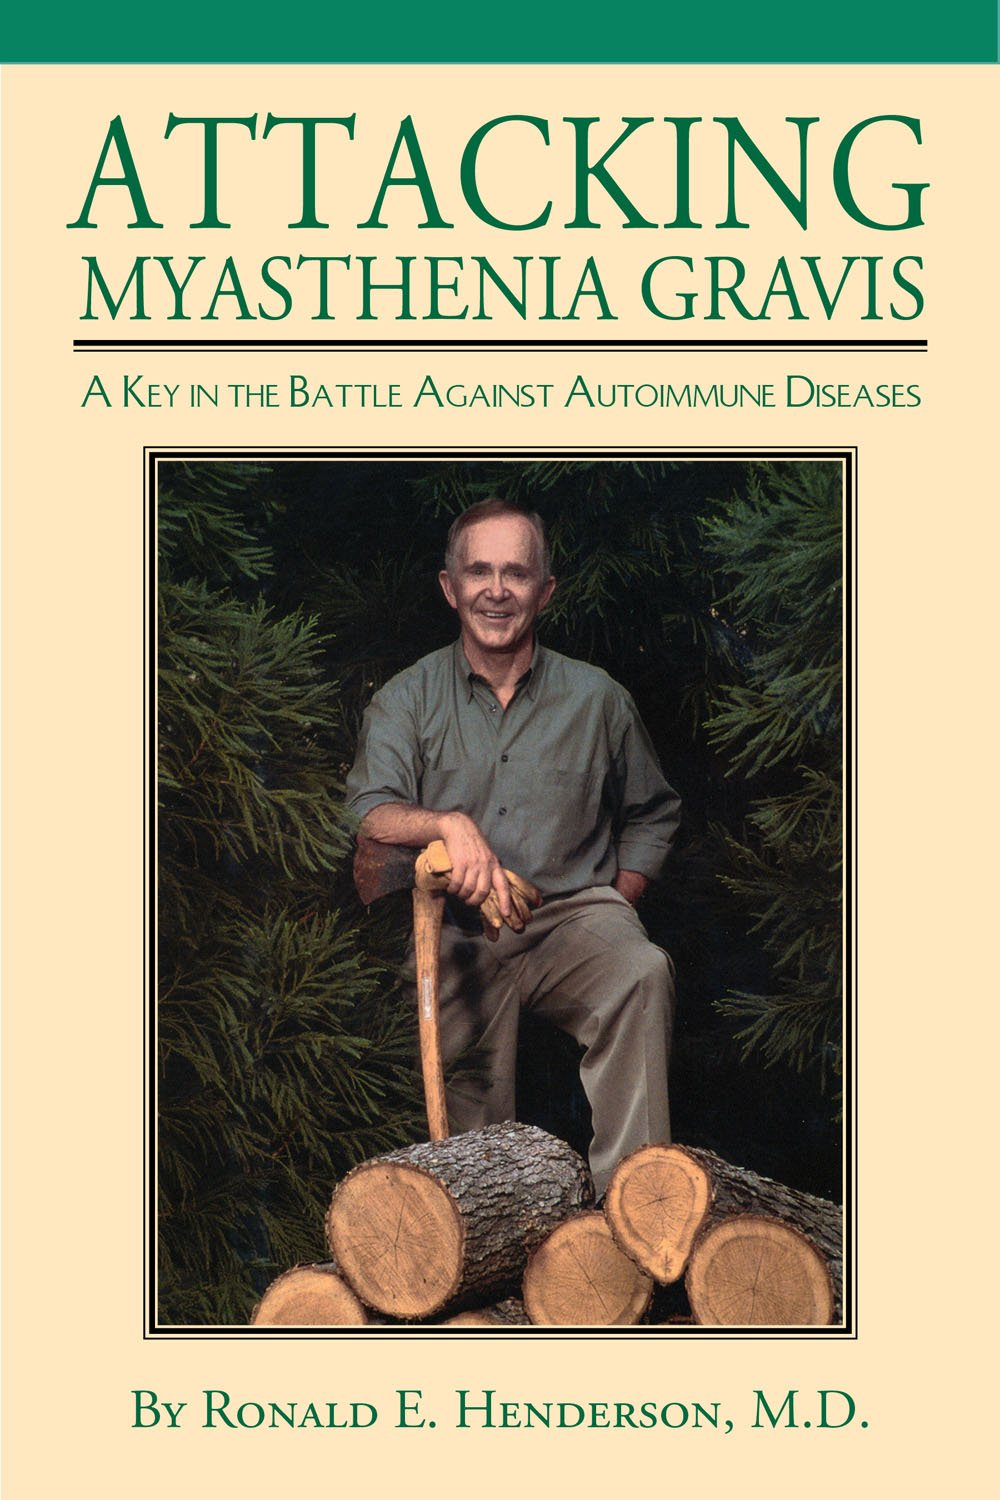 Check Out Myasthenia GravisProducts On Amazon!